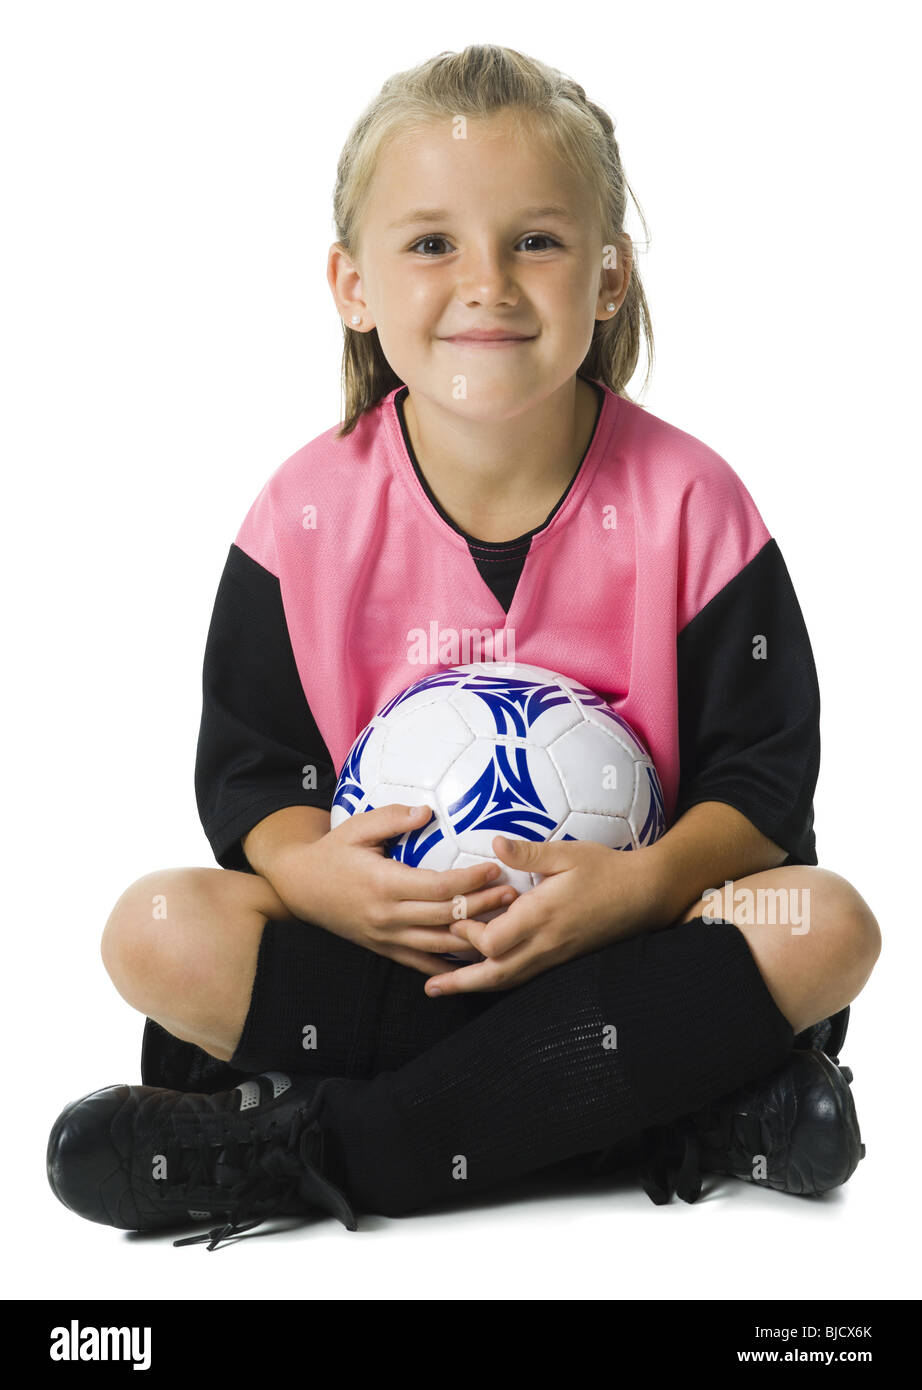 64756fa5a Young girl in a soccer uniform with ball Stock Photo  28558171 - Alamy